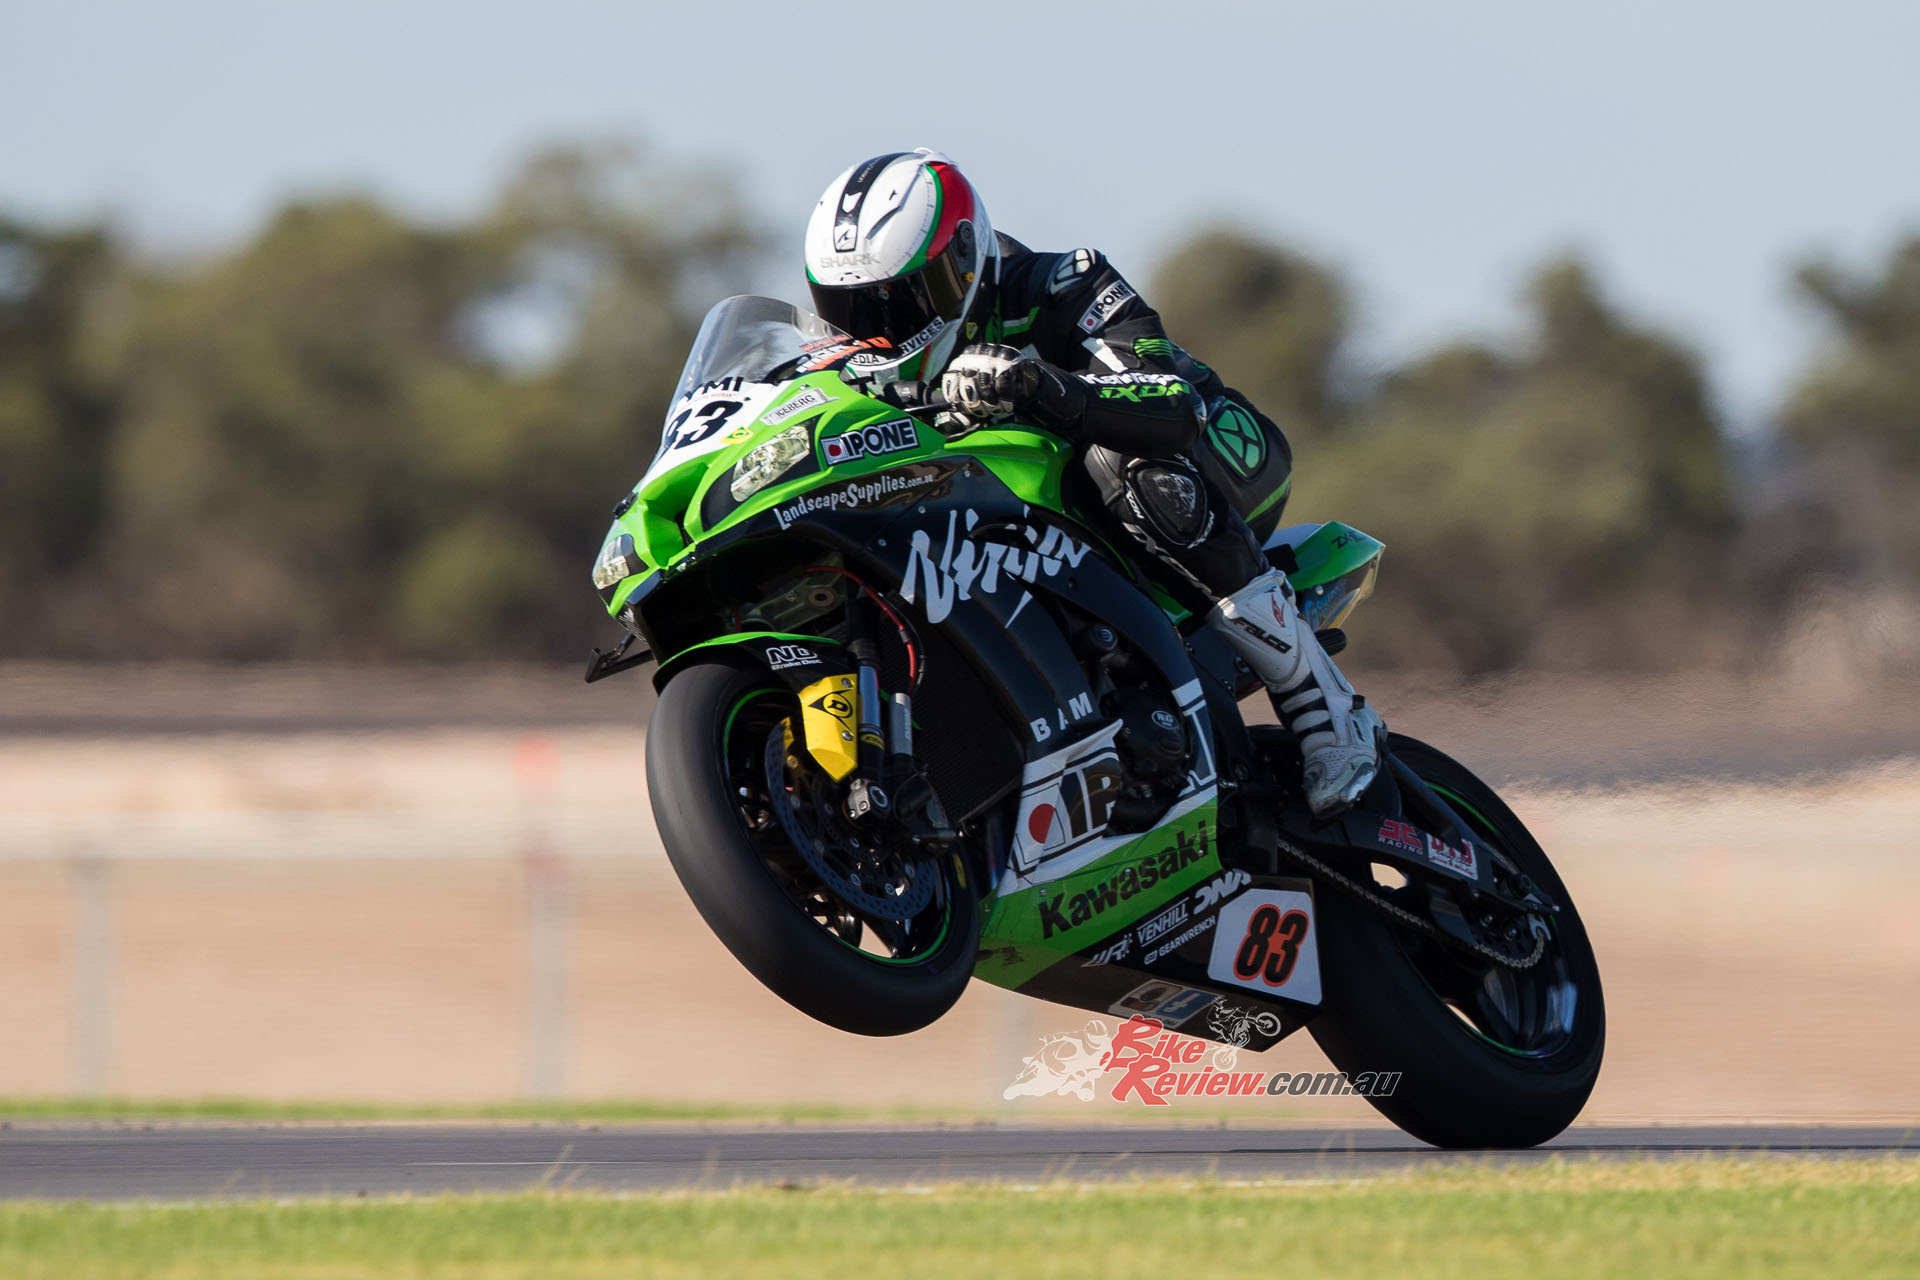 Kyle Buckley is coming to terms with the BC Performance Ninja ZX-10R Superbike. Pic: Foremost Media